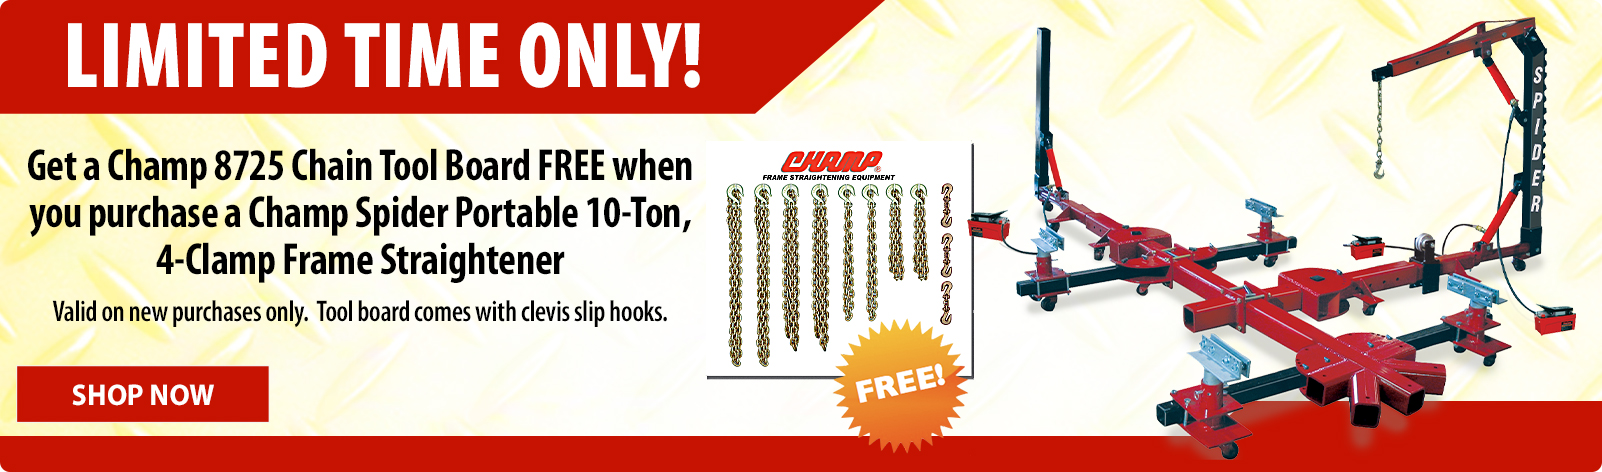 FREE CHAMP chain board with purchase of Spider Frame Straightener!